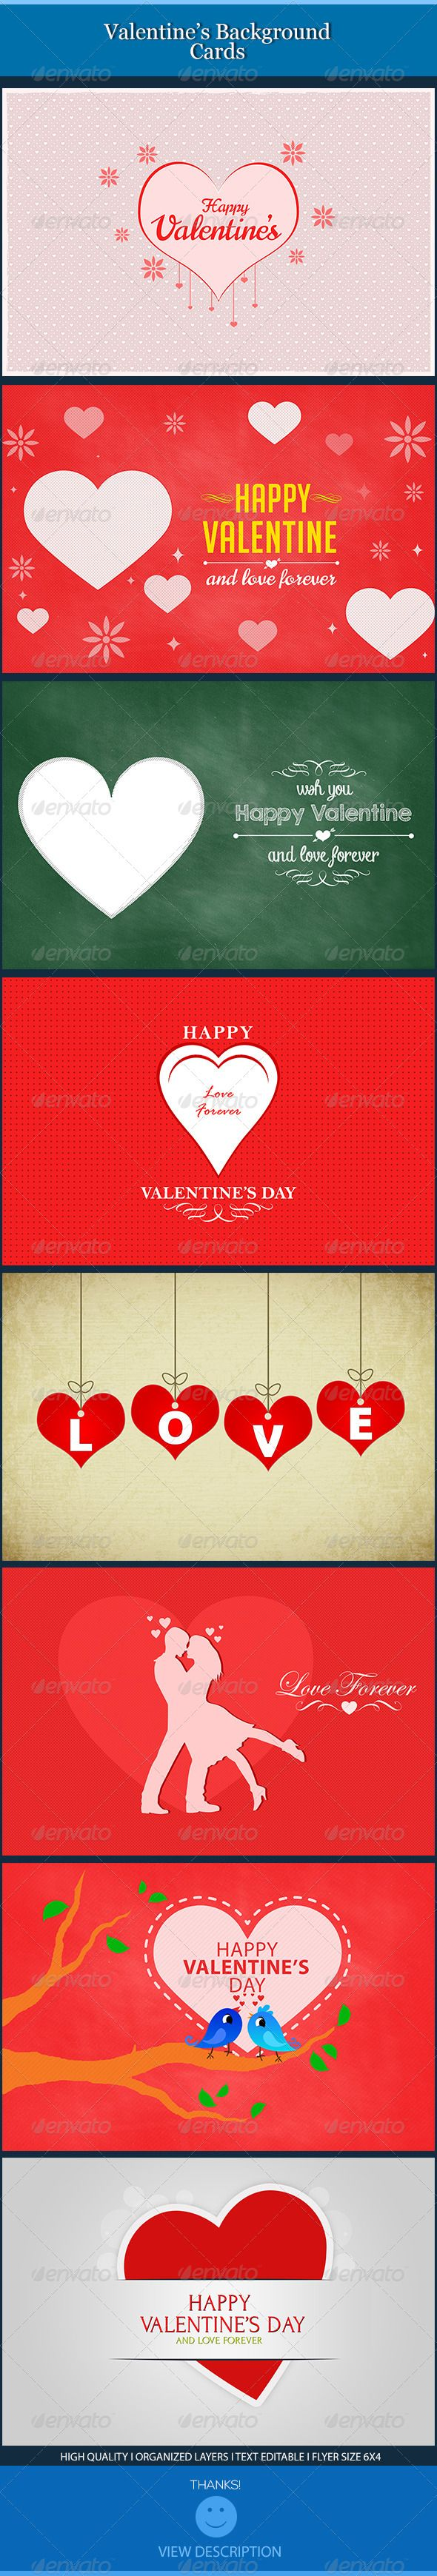 Valentine Backgrounds Cards This template is perfect for a Valentine ...